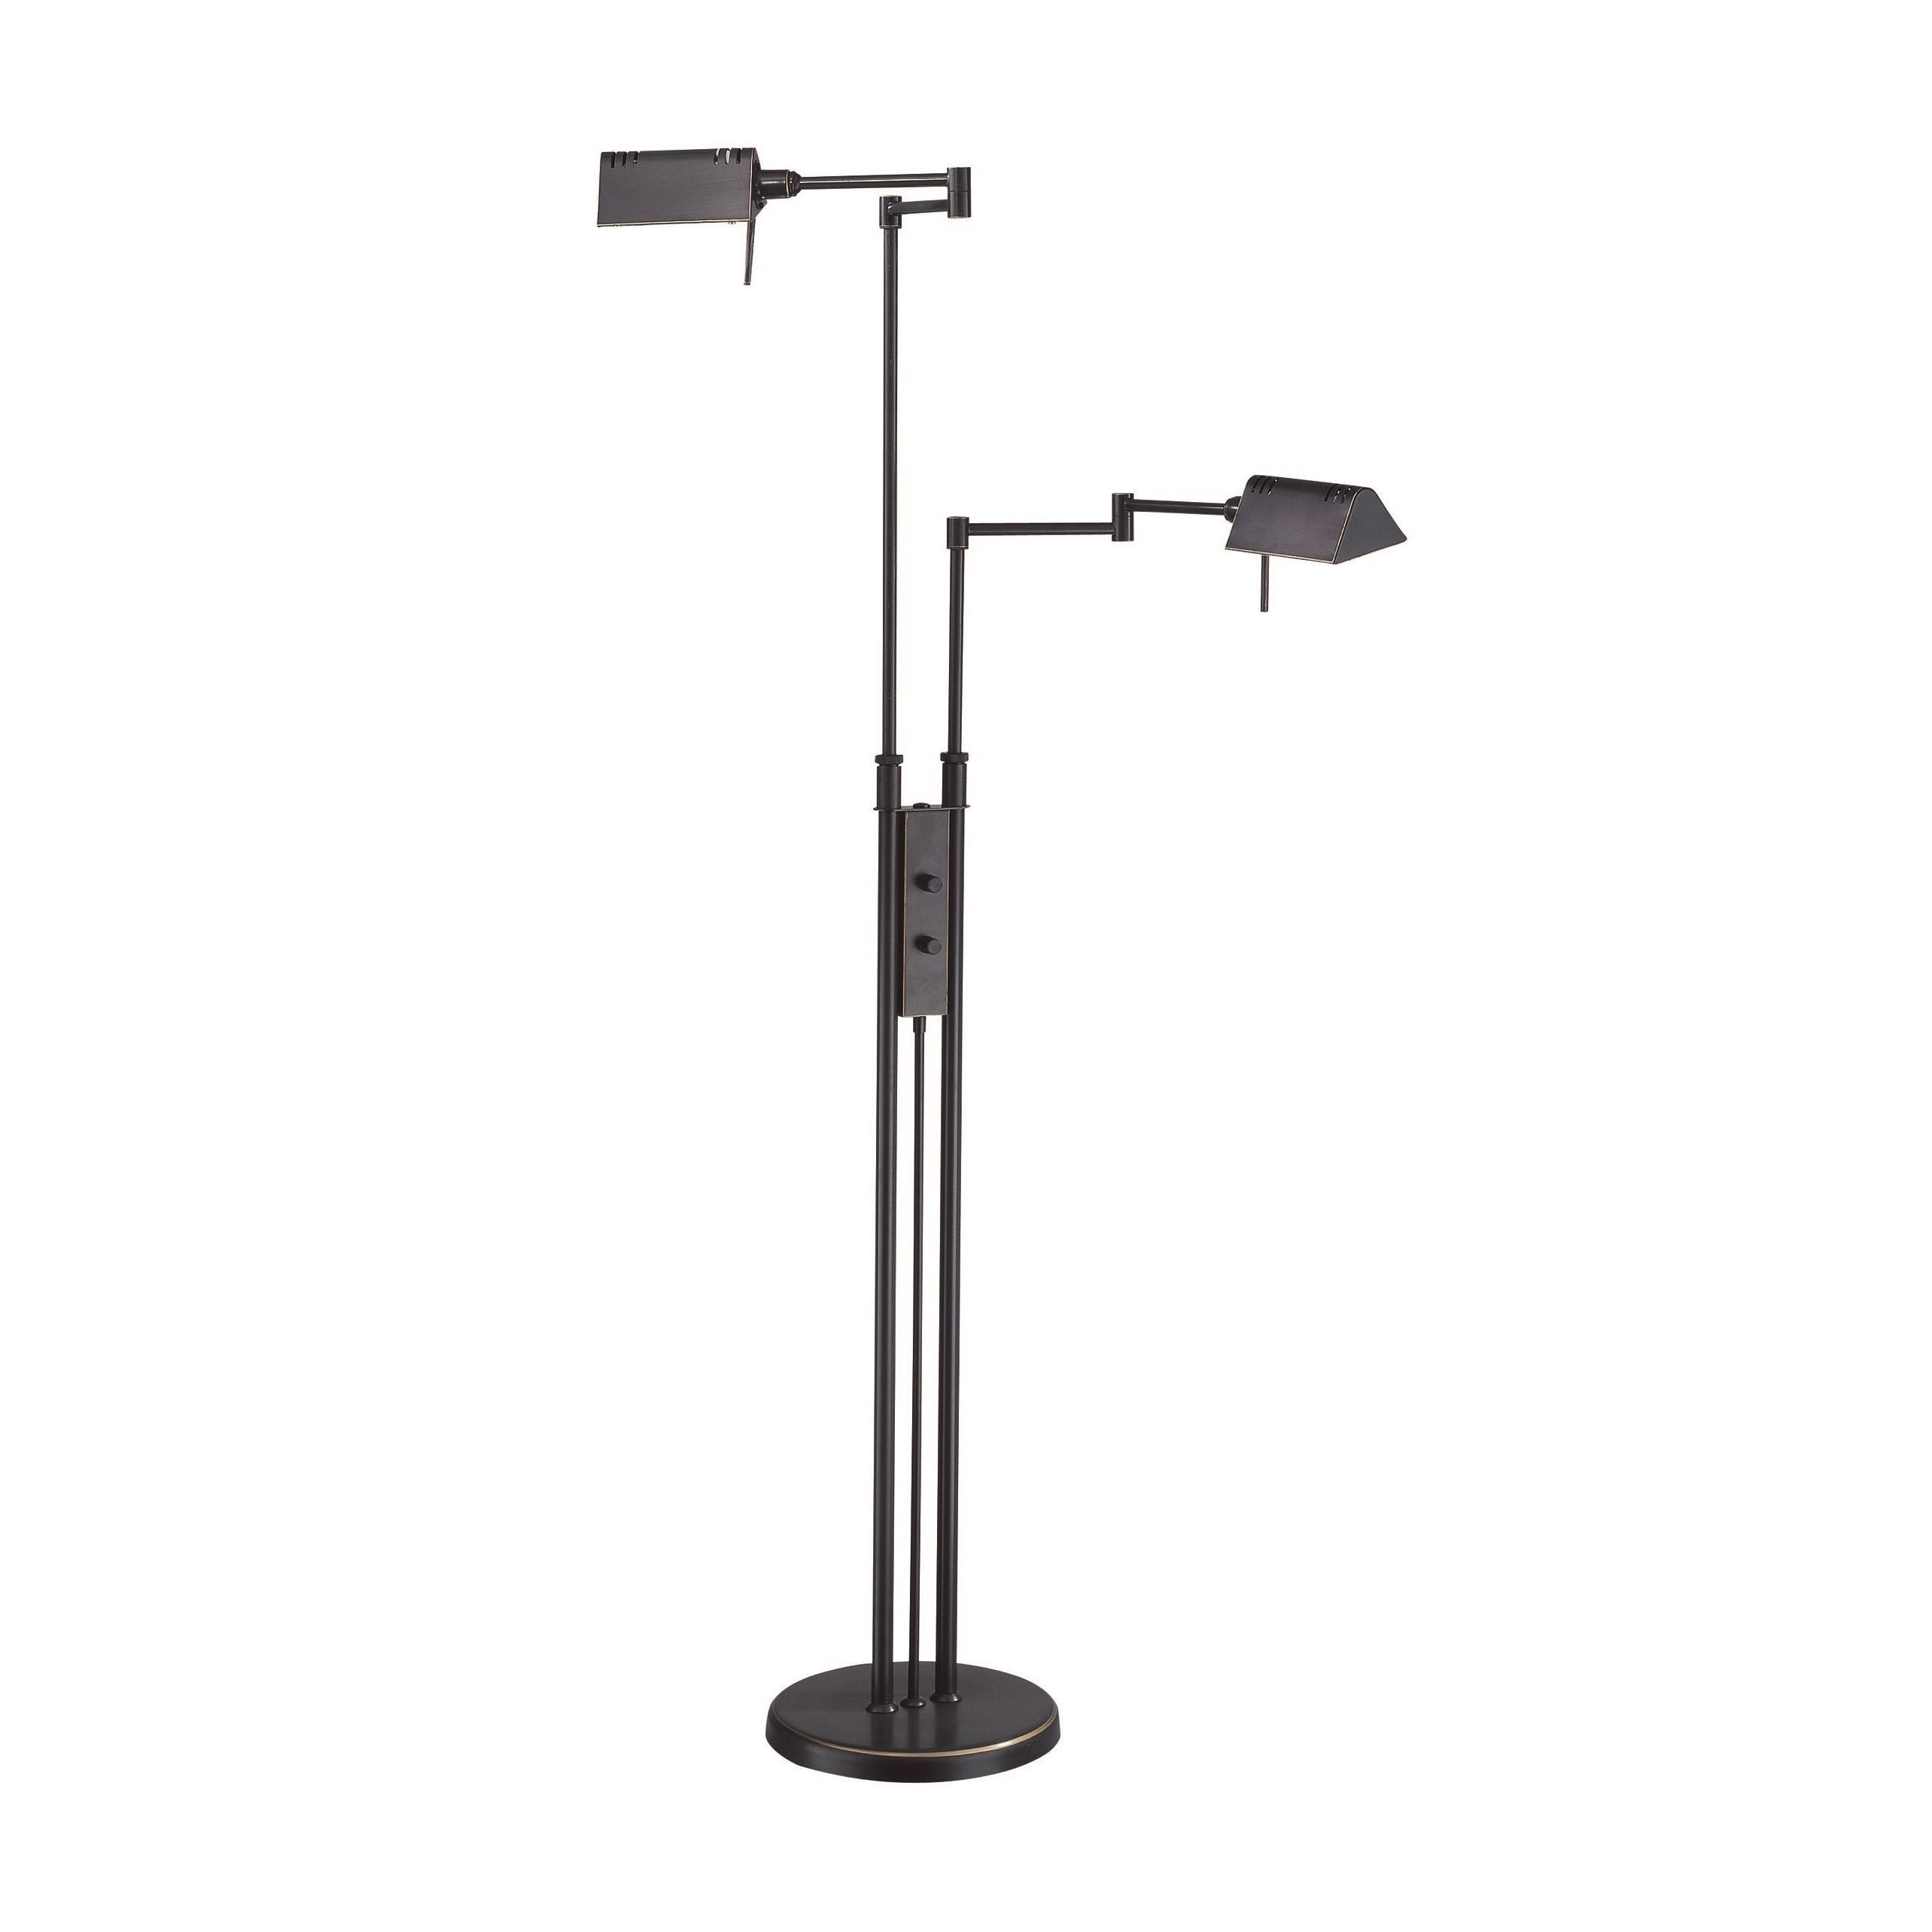 Lite source pharma light floor lamp dark bronze brown metal